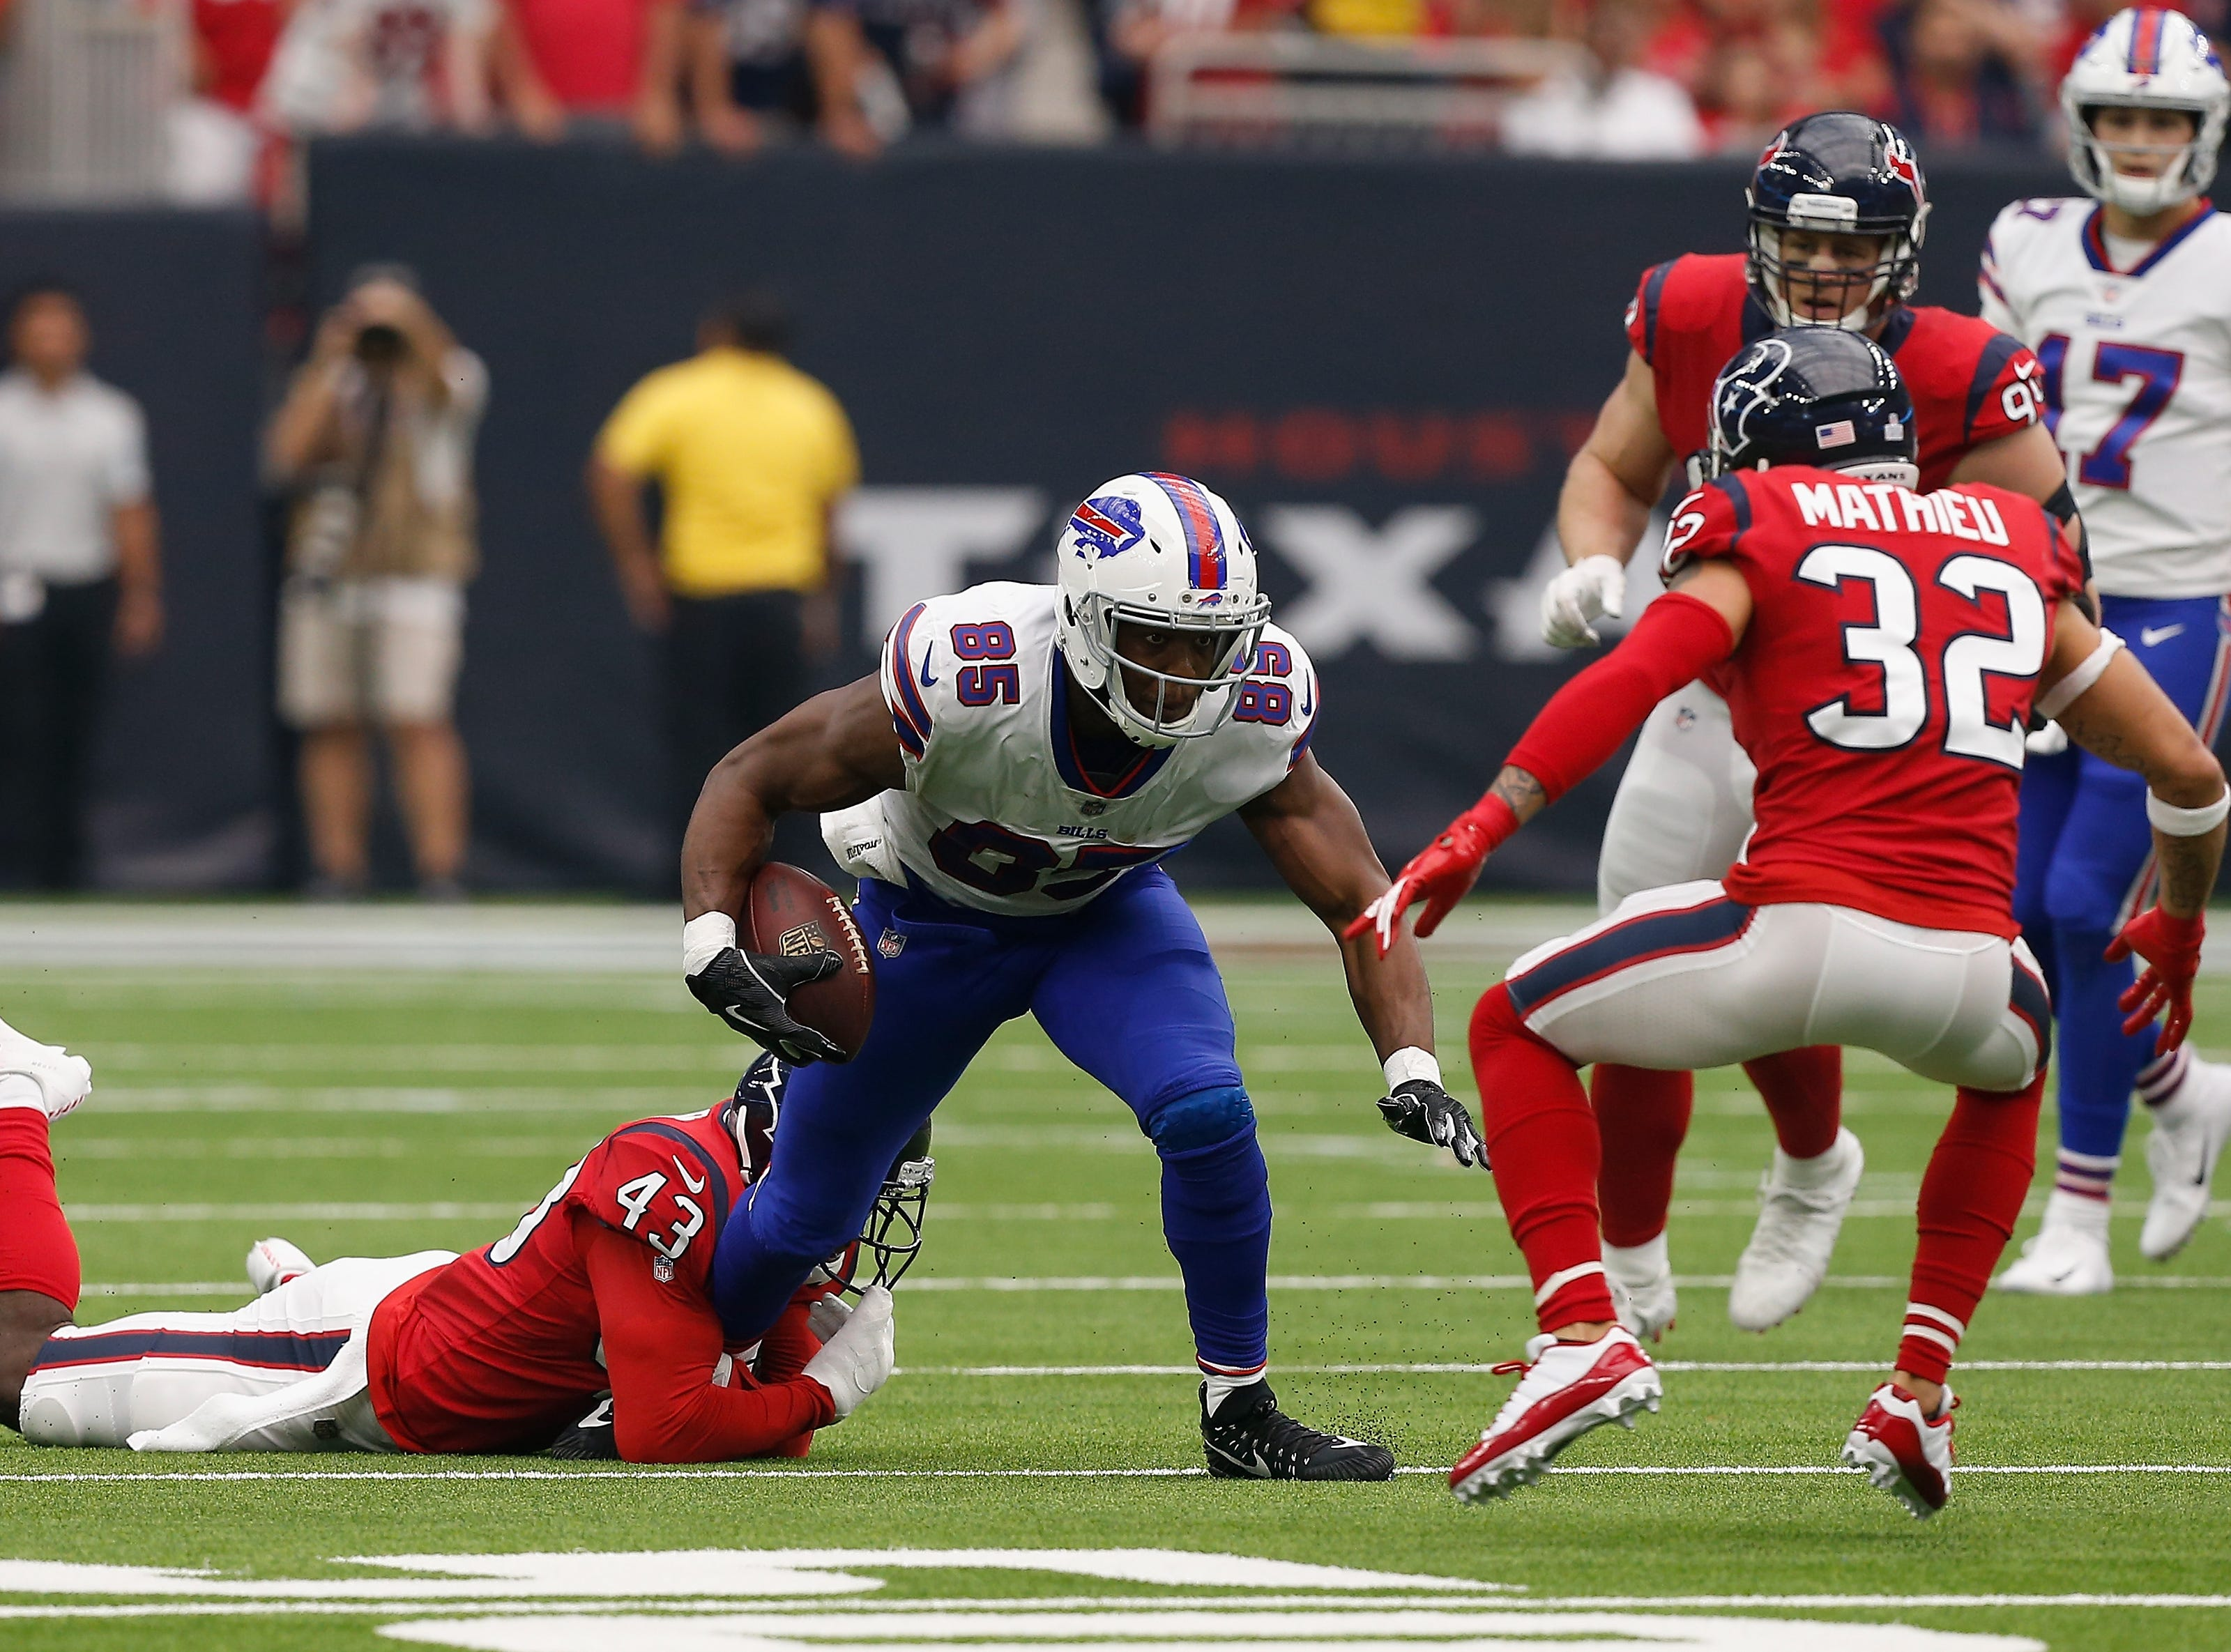 HOUSTON, TX - OCTOBER 14:  Charles Clay #85 of the Buffalo Bills runs the ball after a catch tackled by Shareece Wright #43 and Tyrann Mathieu #32 of the Houston Texans in the second quarter at NRG Stadium on October 14, 2018 in Houston, Texas.  (Photo by Bob Levey/Getty Images)